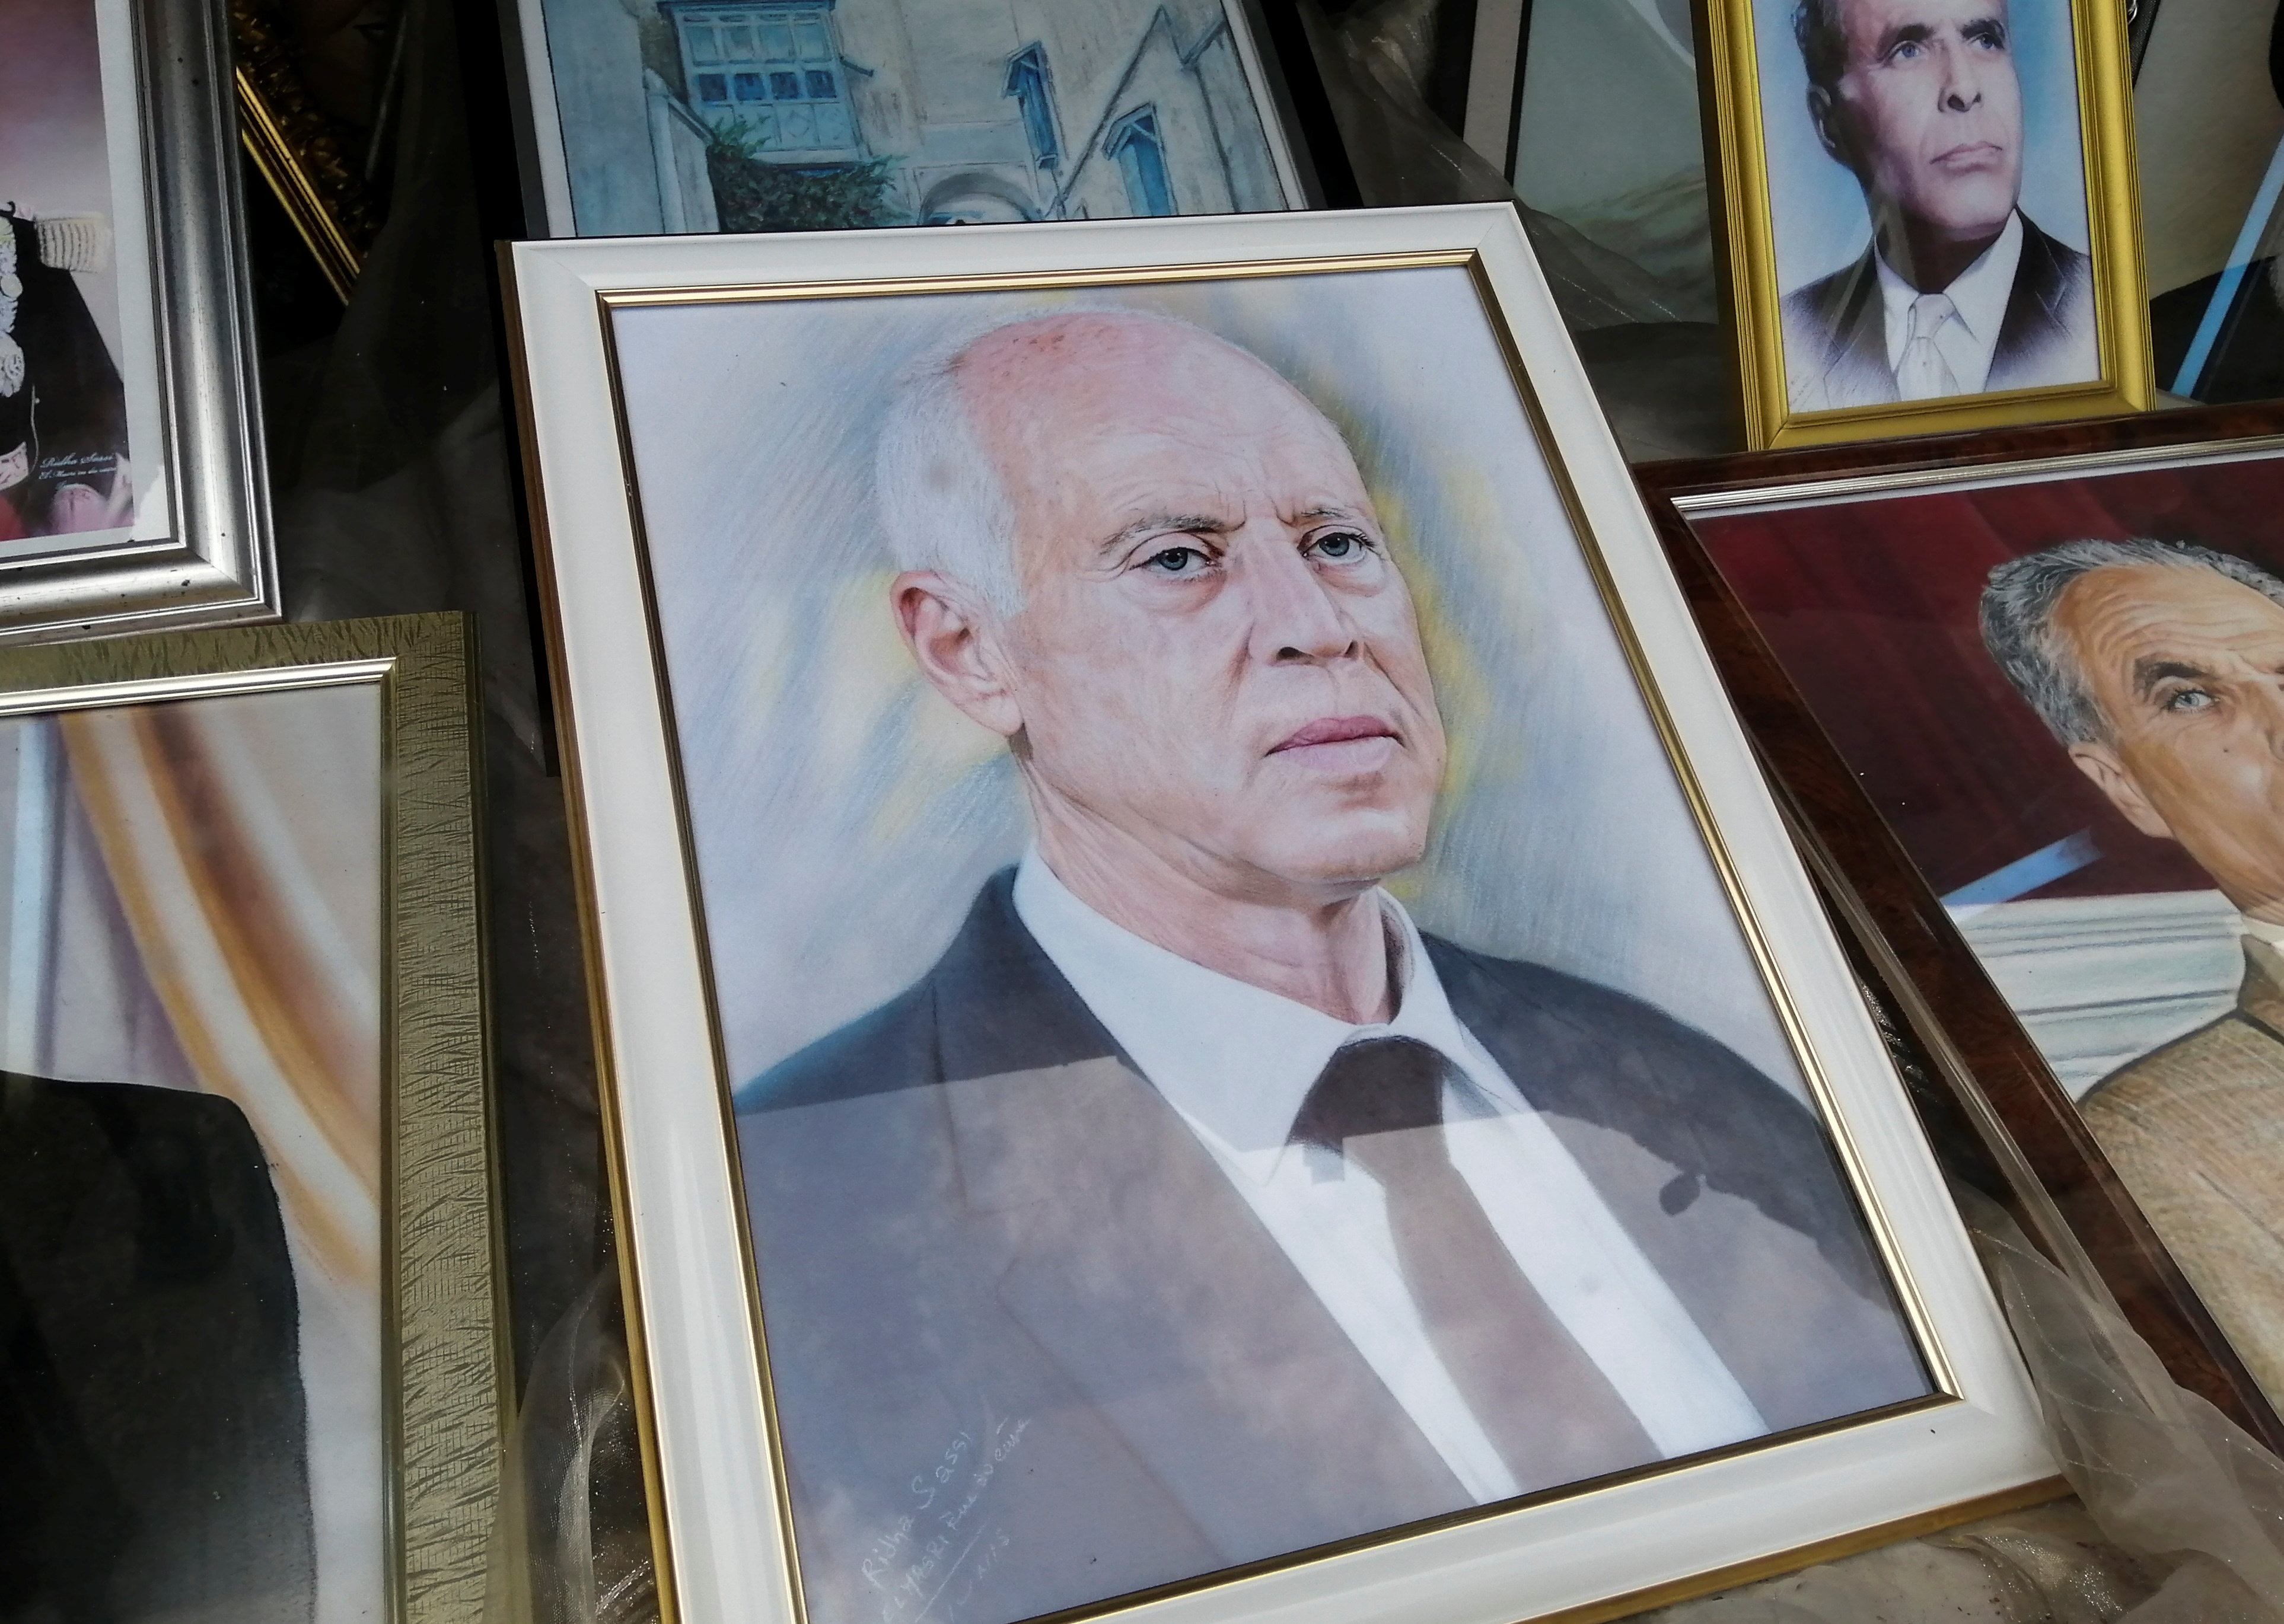 A portrait of Tunisian President Kais Saied is displayed inside a photography shop in Tunis, Tunisia September 23, 2021. REUTERS/Jihed Abidellaoui